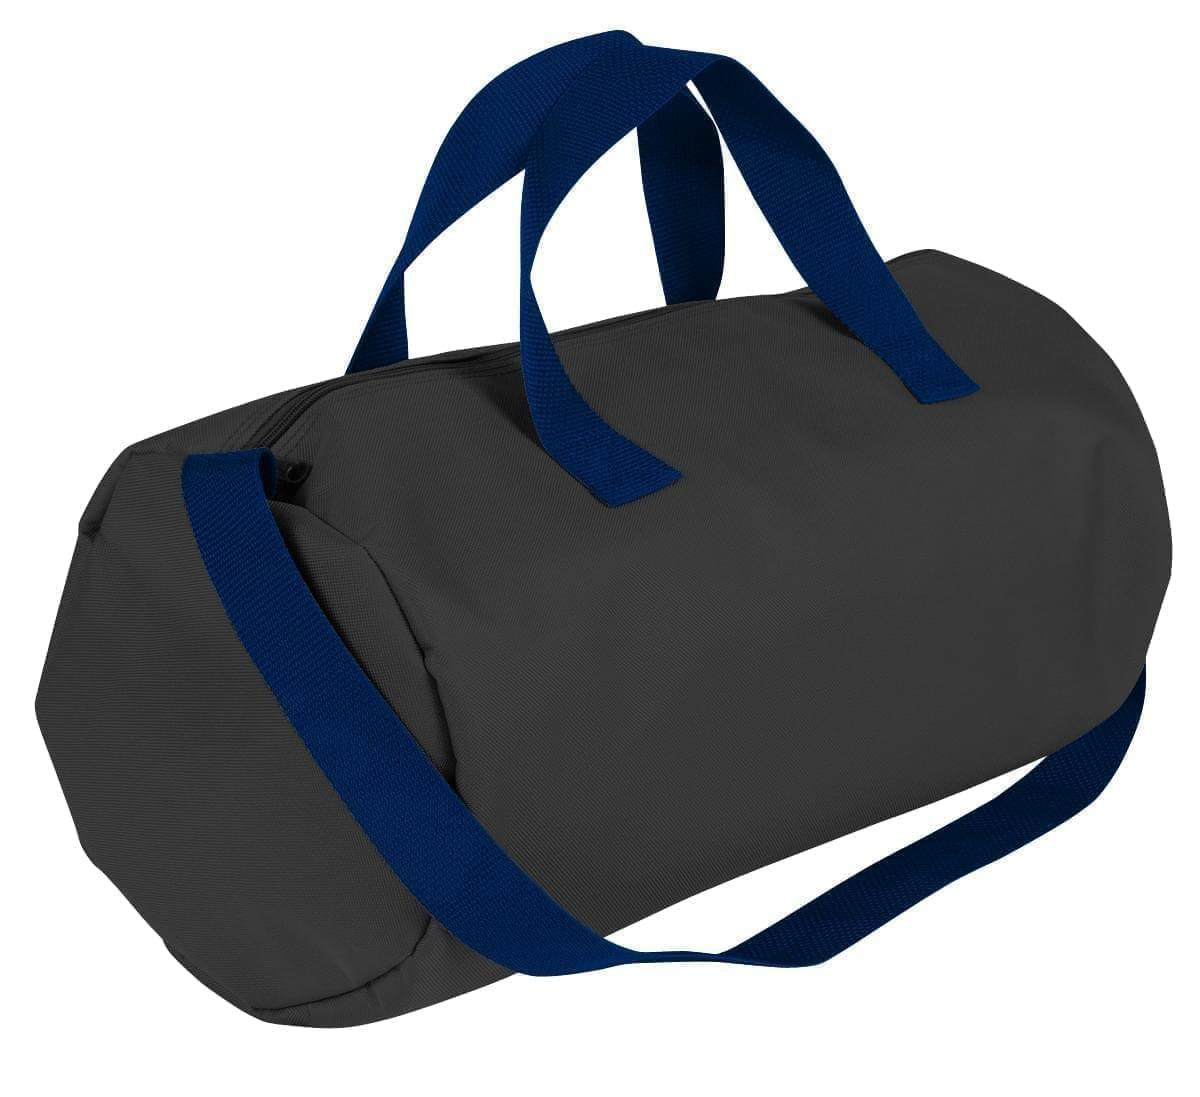 USA Made Nylon Poly Gym Roll Bags, Black-Navy, ROCX31AAOZ